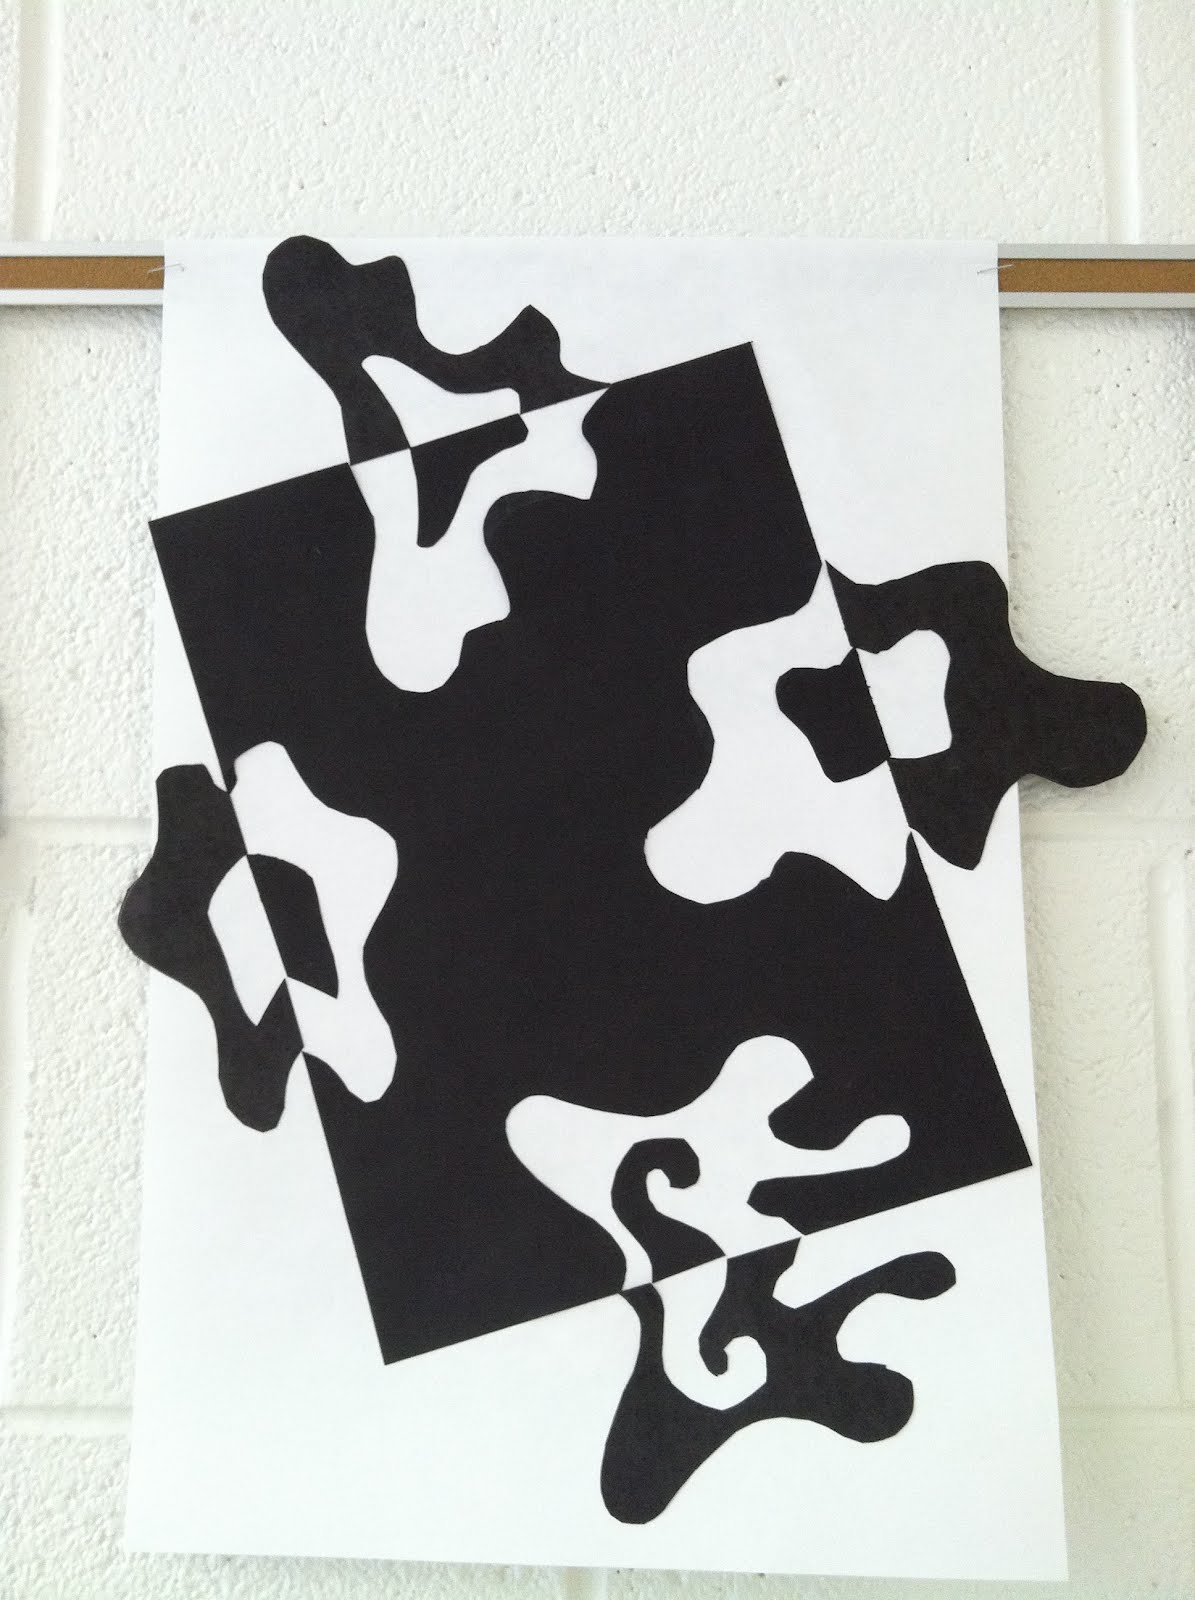 Arty Party Positive And Negative Space Designs